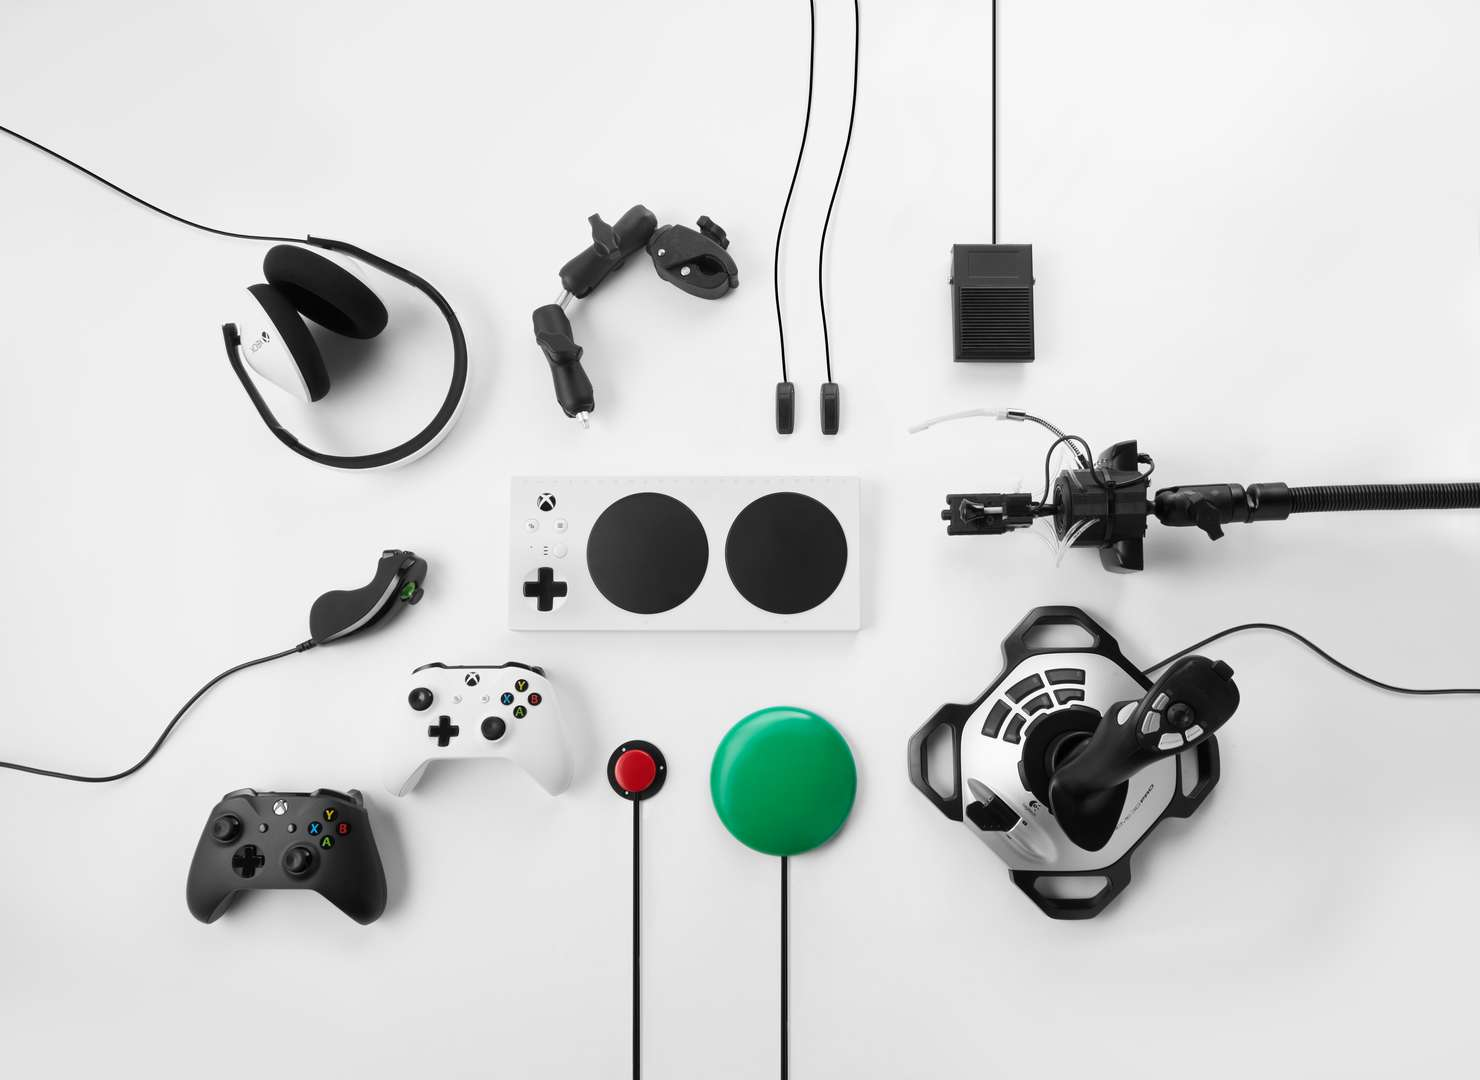 Microsoft Xbox Adaptive Controller and Equipment Full Lineup console